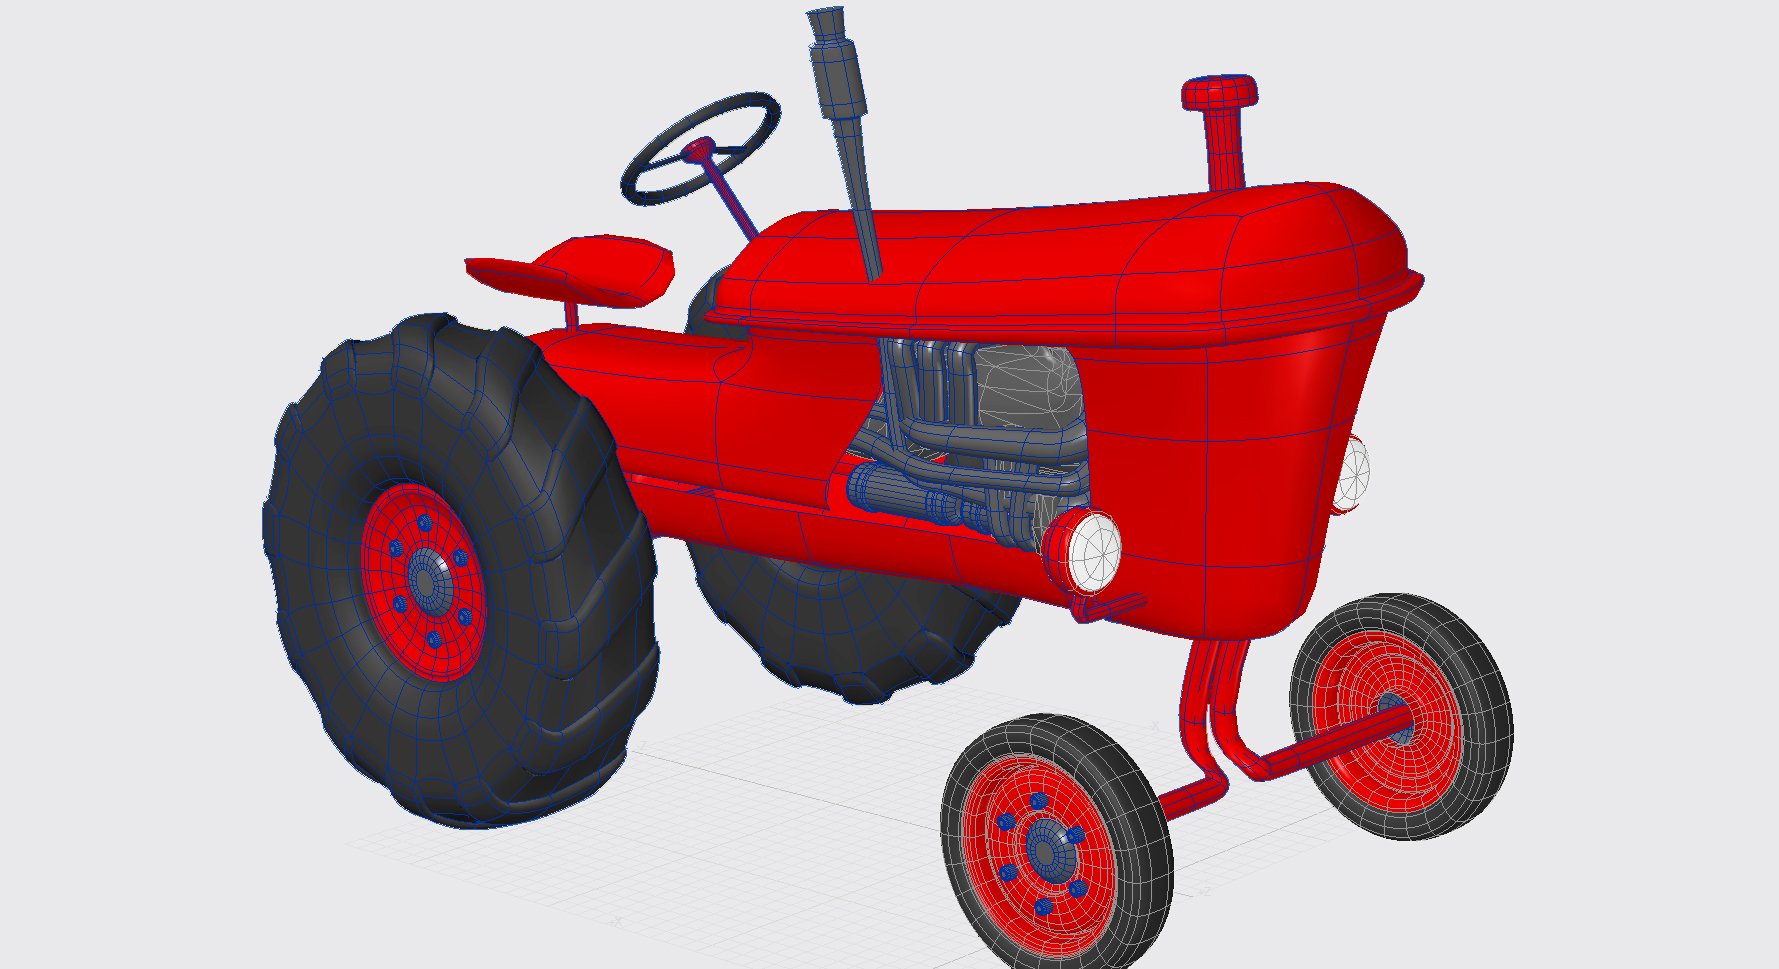 Vintage Tractor Cartoon : Vintage red tractor for farming d model max obj ds